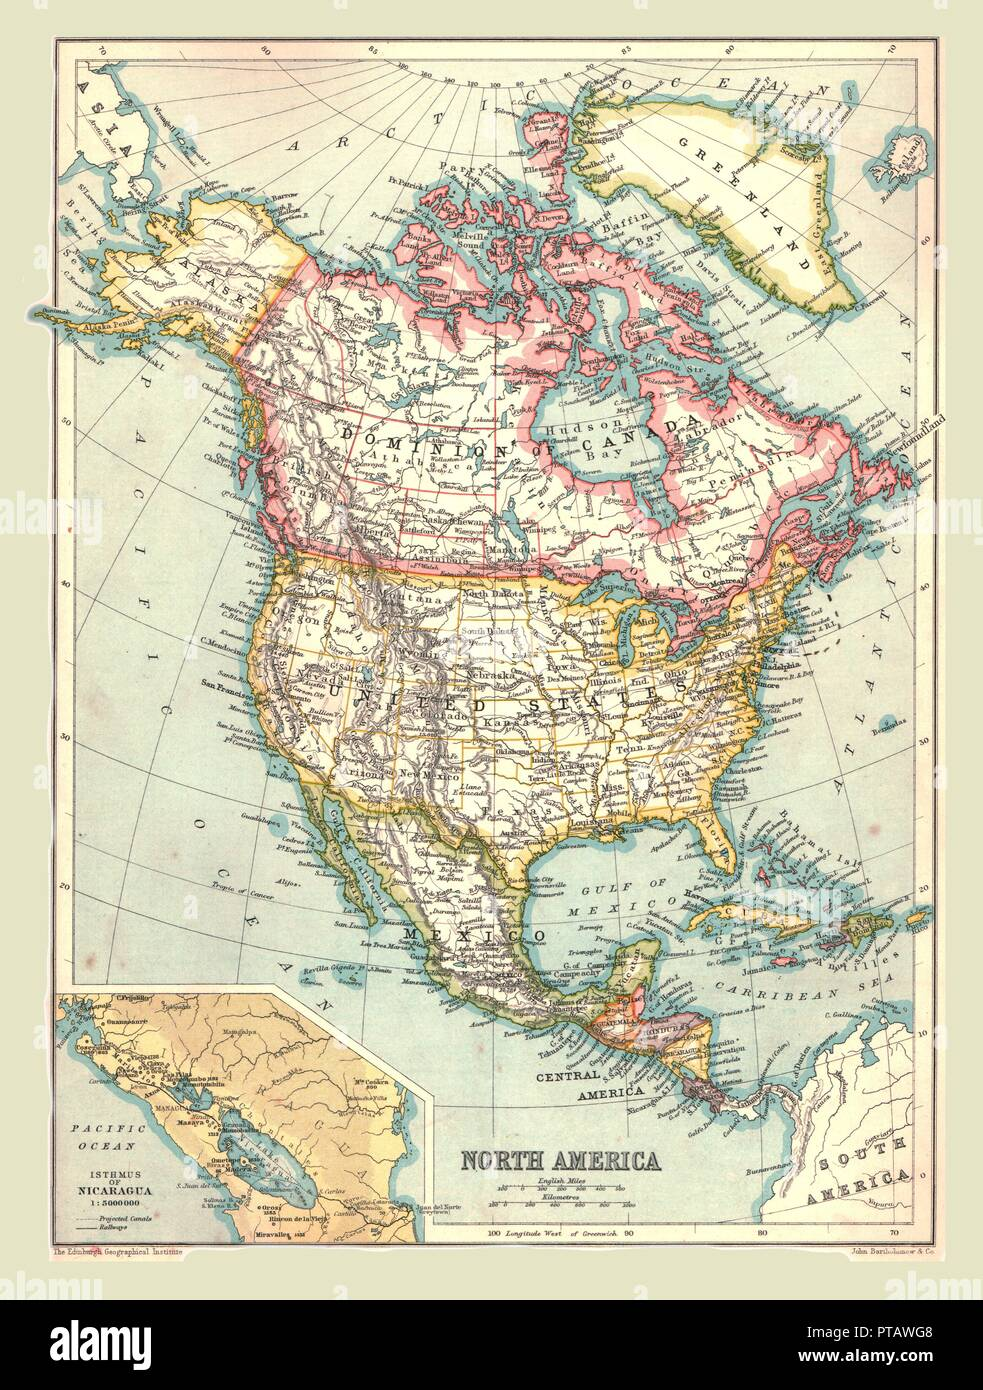 Map of North America, 1902. Showing the USA, Canada, Greenland ...